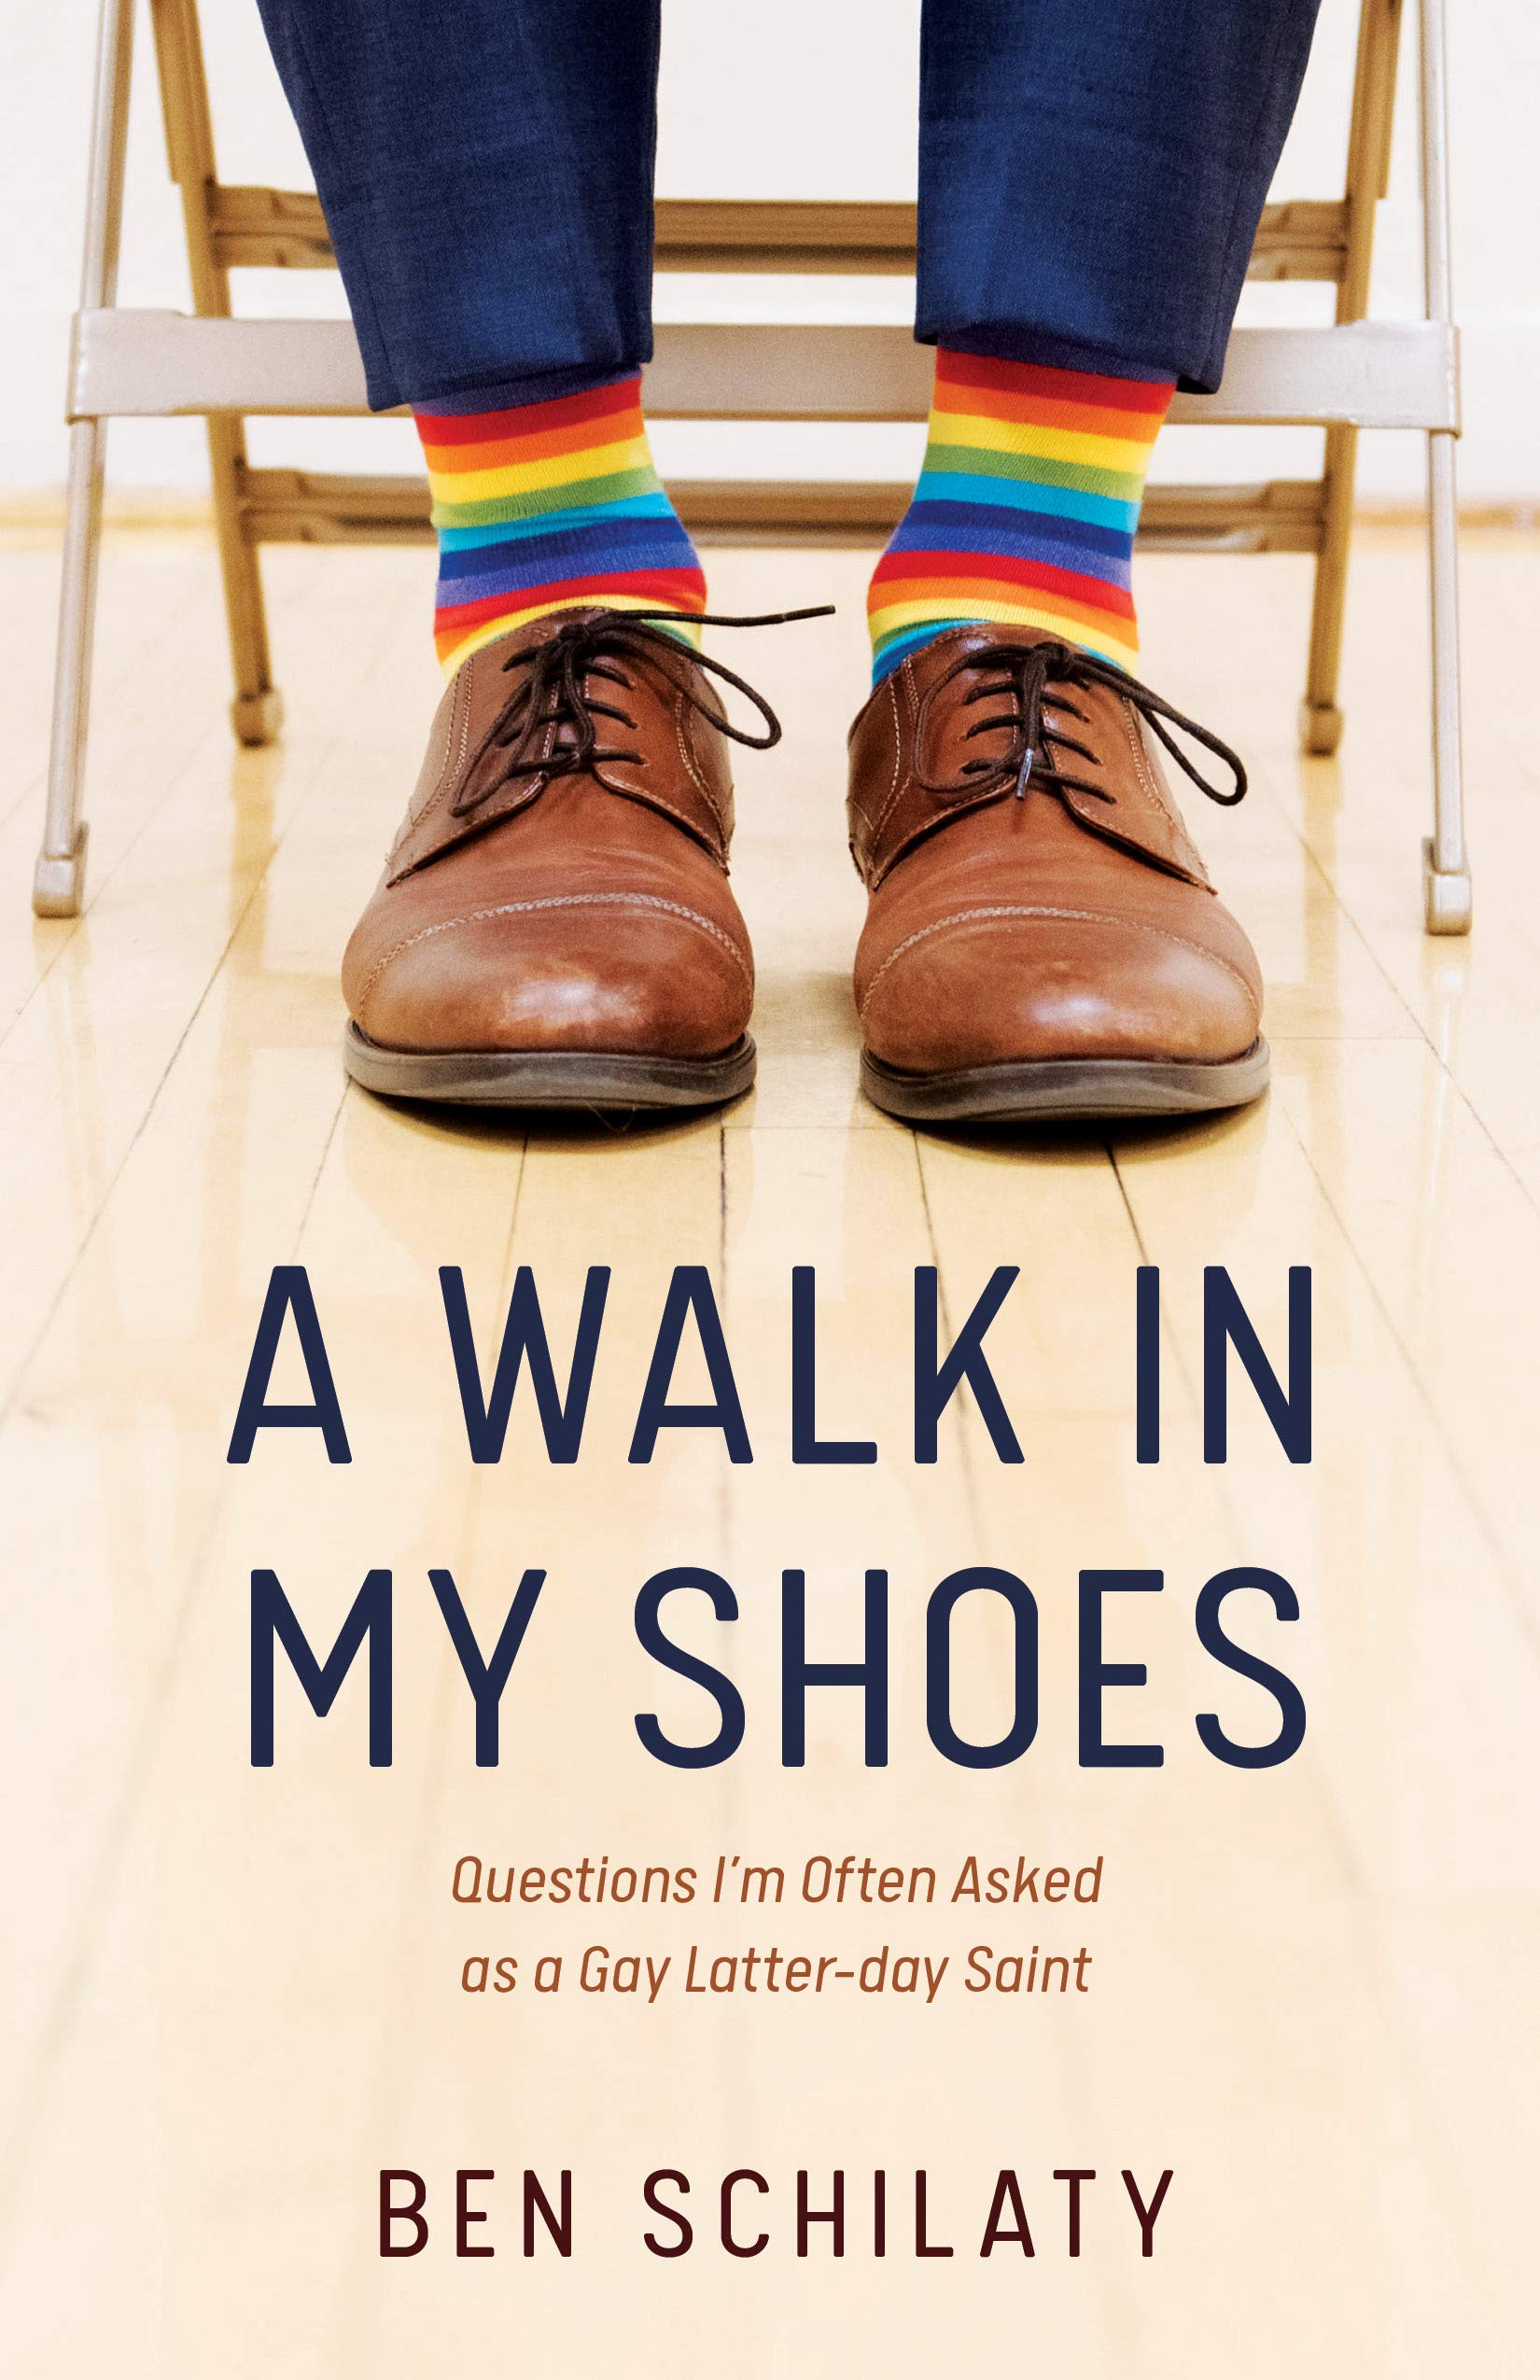 A-Walk-in-My-Shoes:-Questions-I'm-Often-Asked-as-a-Gay-Latter-Day-Saint